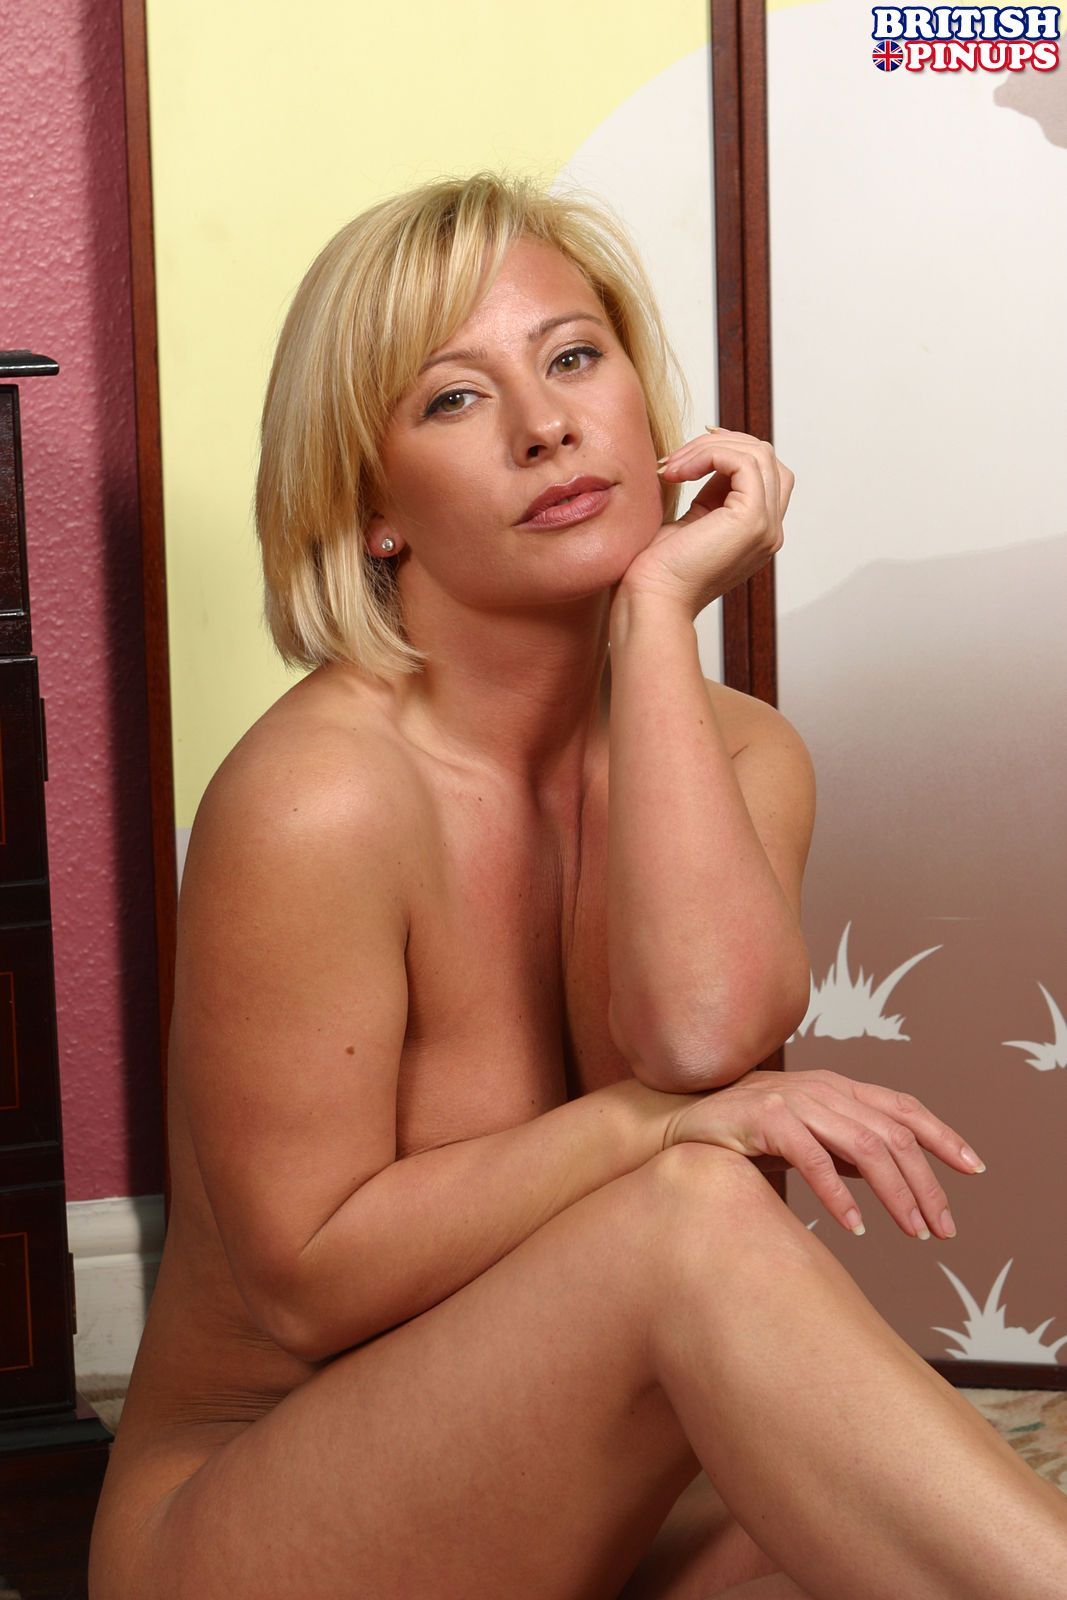 Phrase... google free adult image directory yes